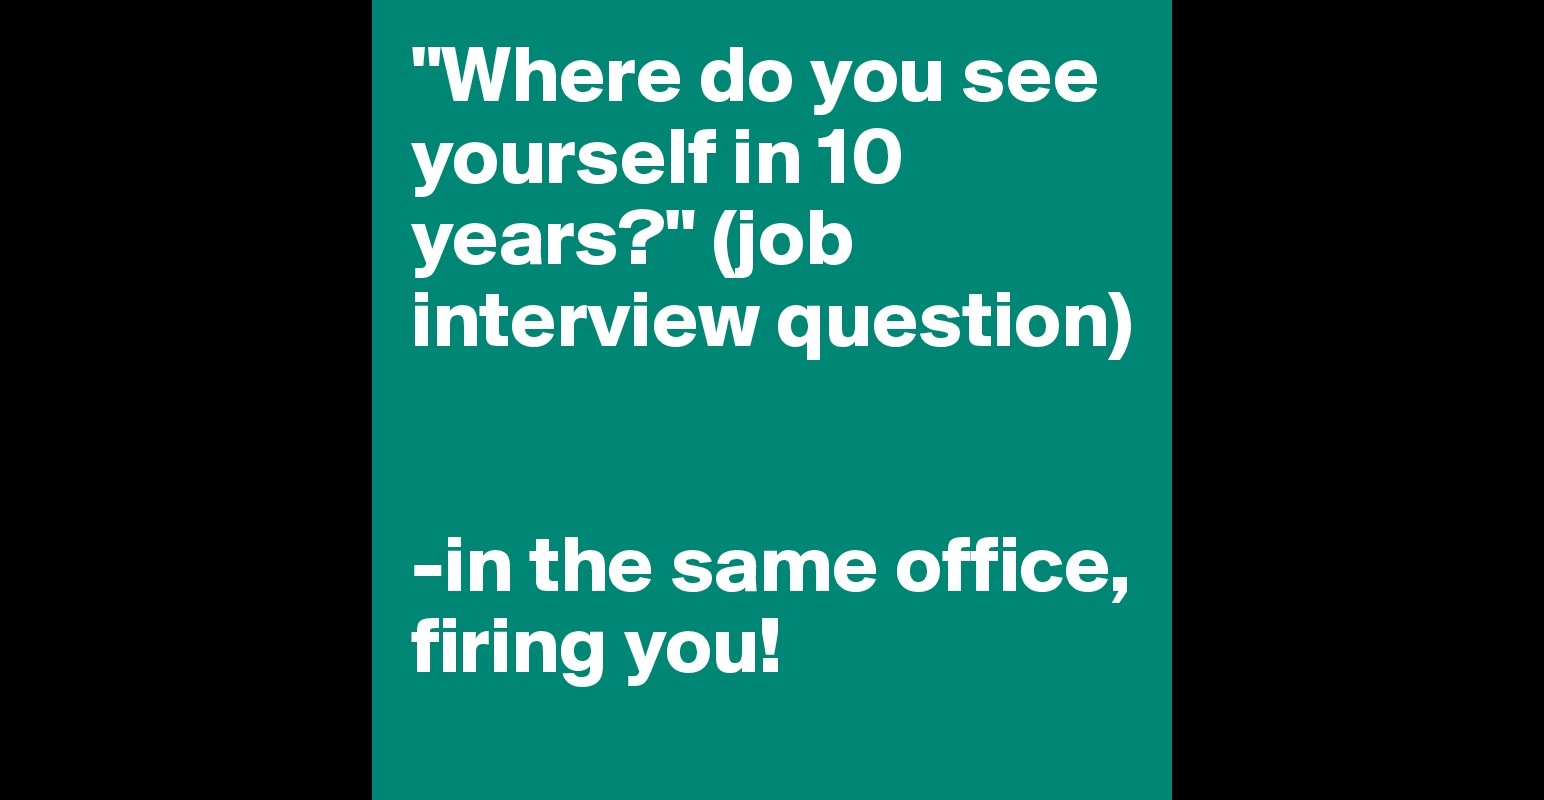 where do you see yourself in years job interview question where do you see yourself in 10 years job interview question in the same office firing you post by acos2 on boldomatic